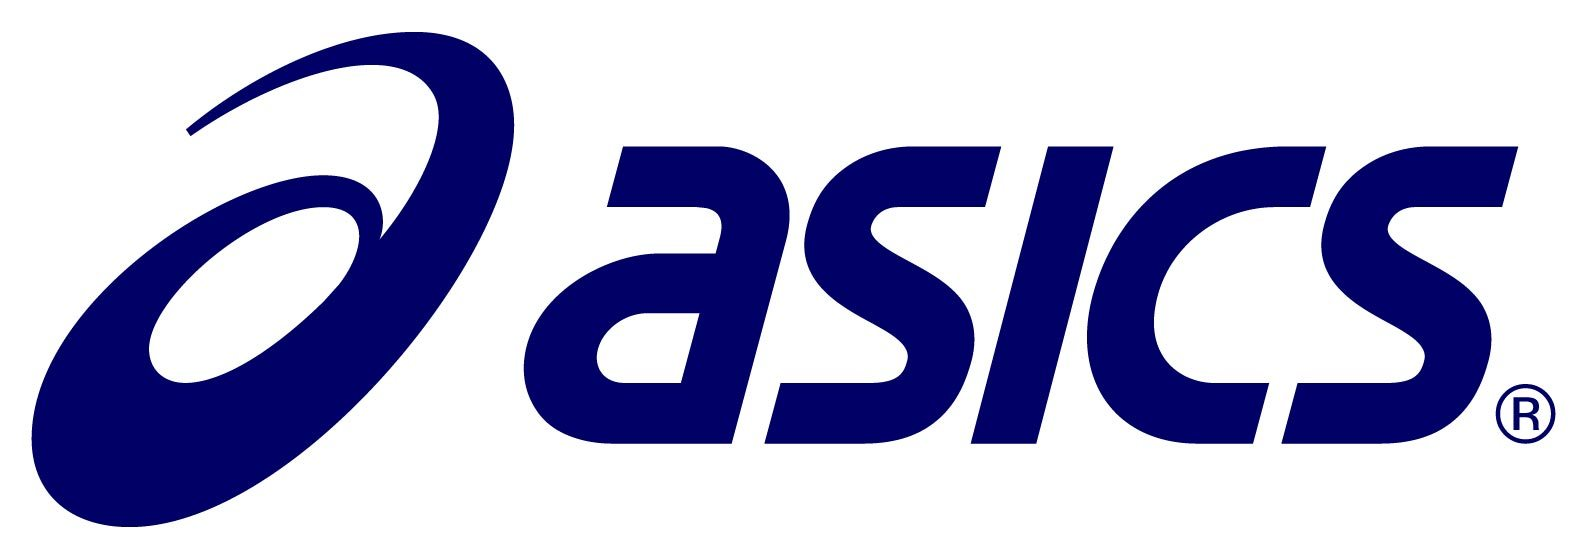 https://lt3.pigugroup.eu/uploaded/Asics_logo.jpg